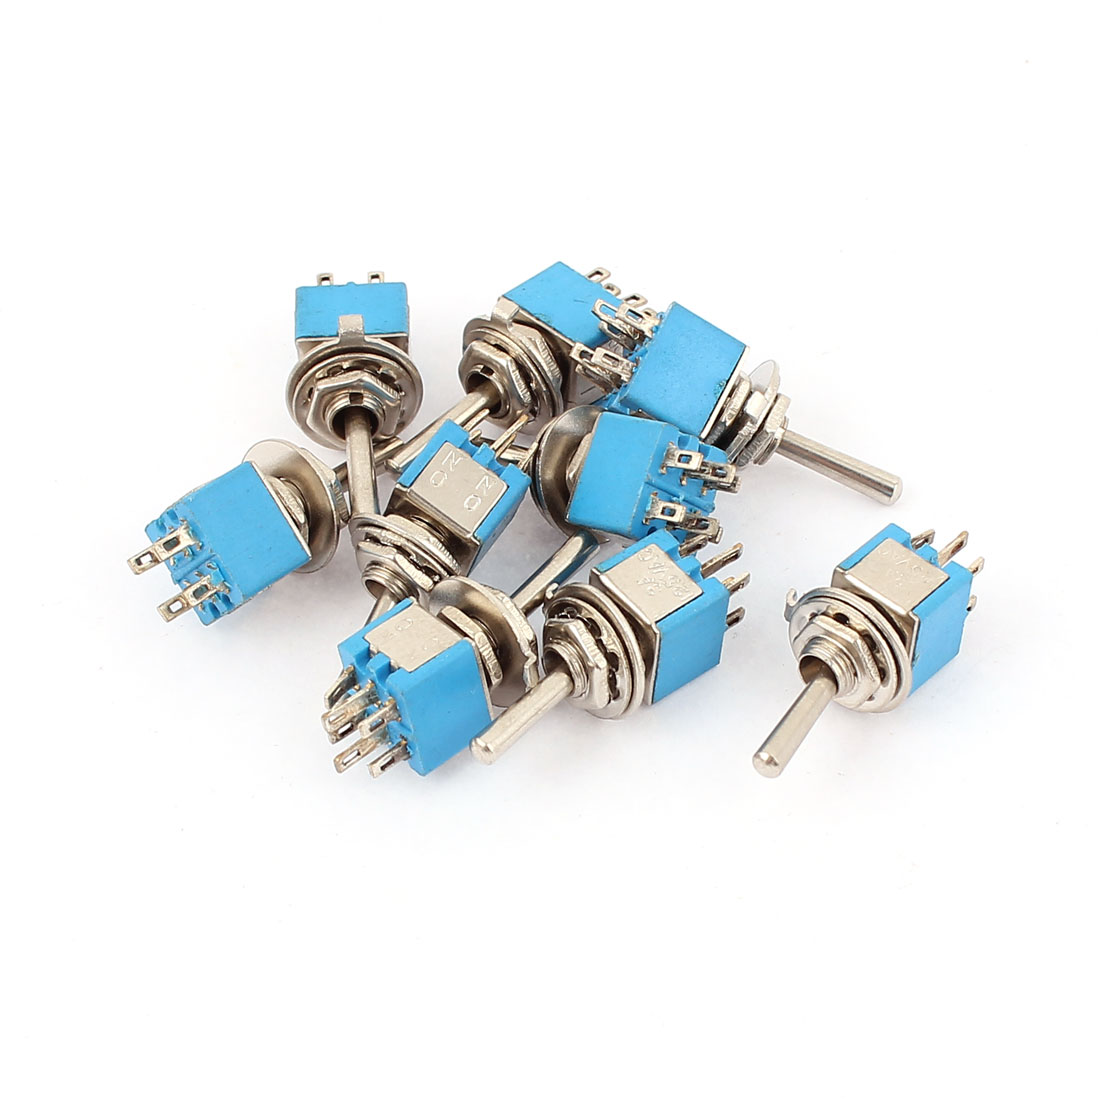 9 Pcs 250V 3A 6 Terminals Latching Rocker Type Power Toggle Switch DPDT